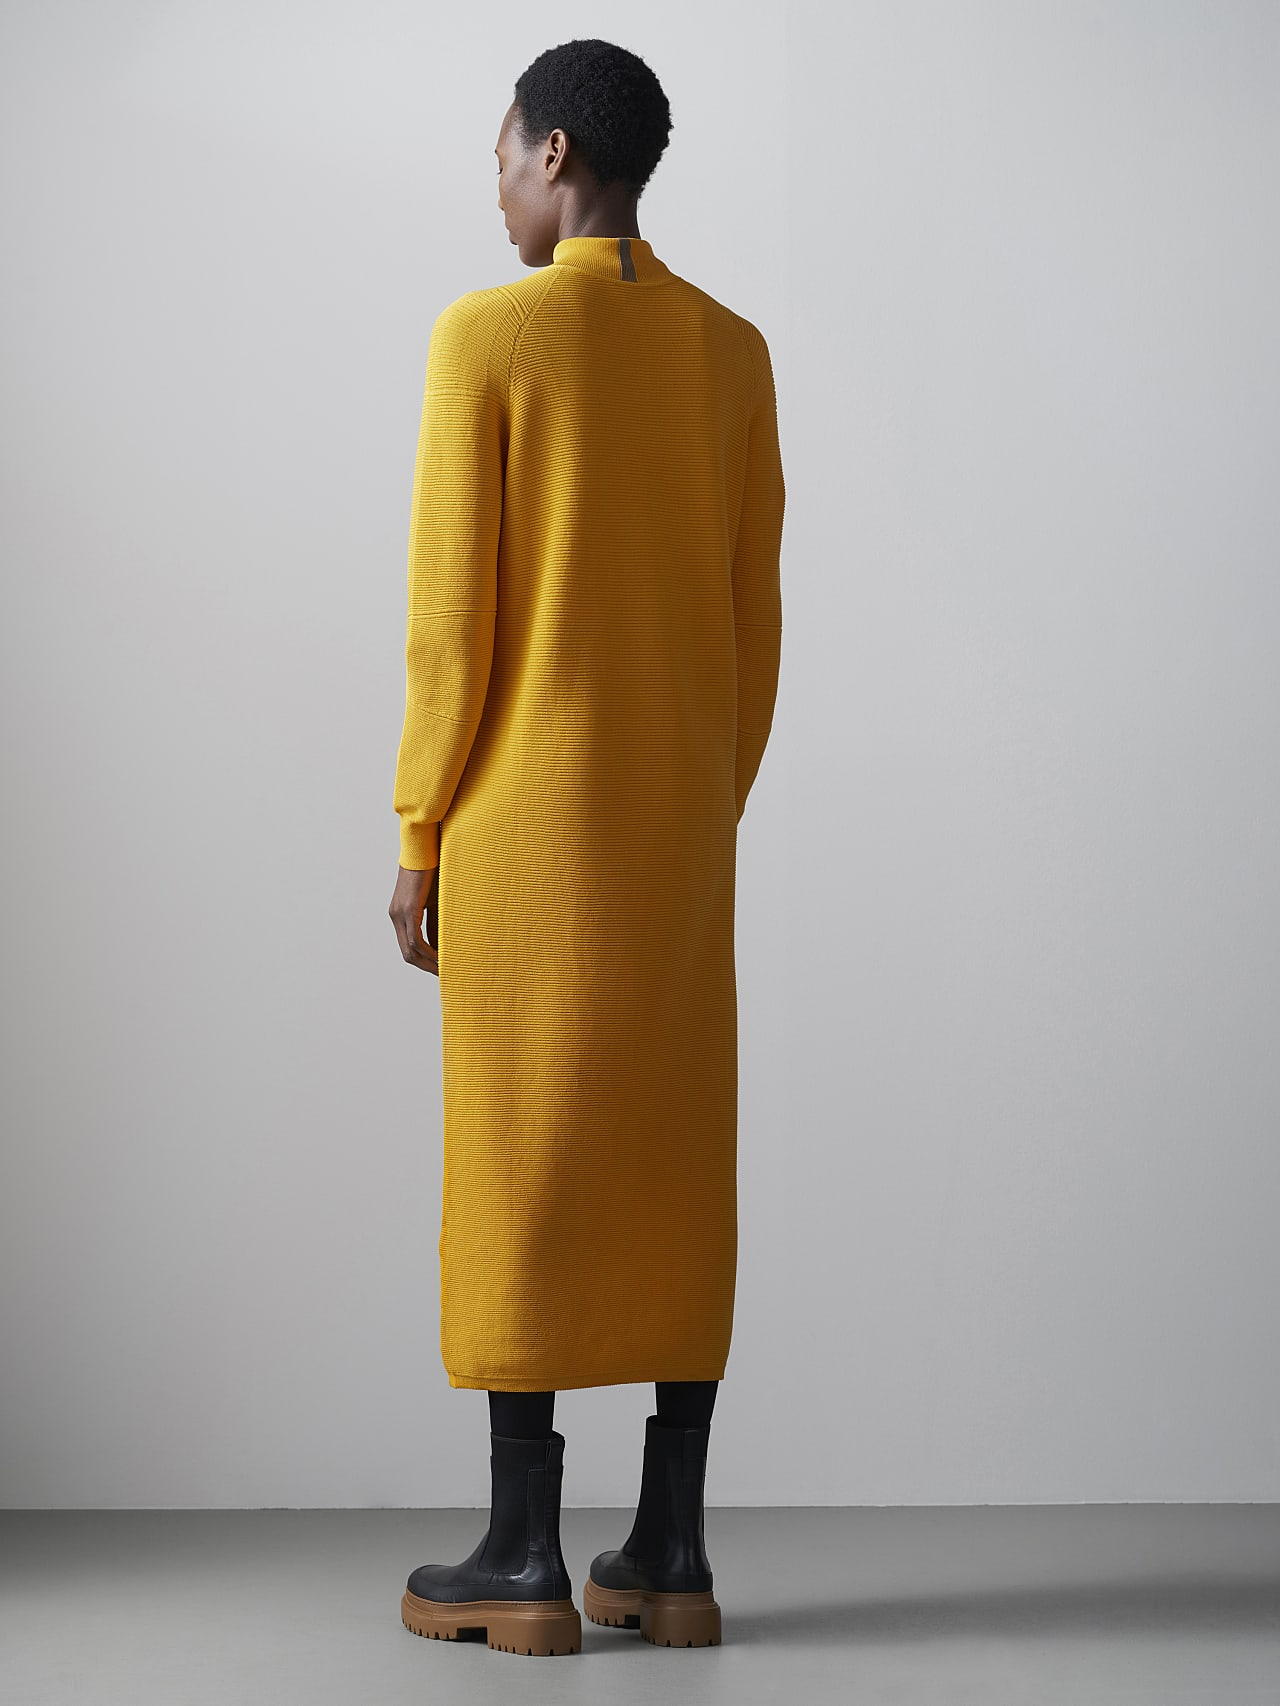 FOXEE V1.Y5.02 Seamless 3D Knit Mock-Neck Dress yellow Right Alpha Tauri